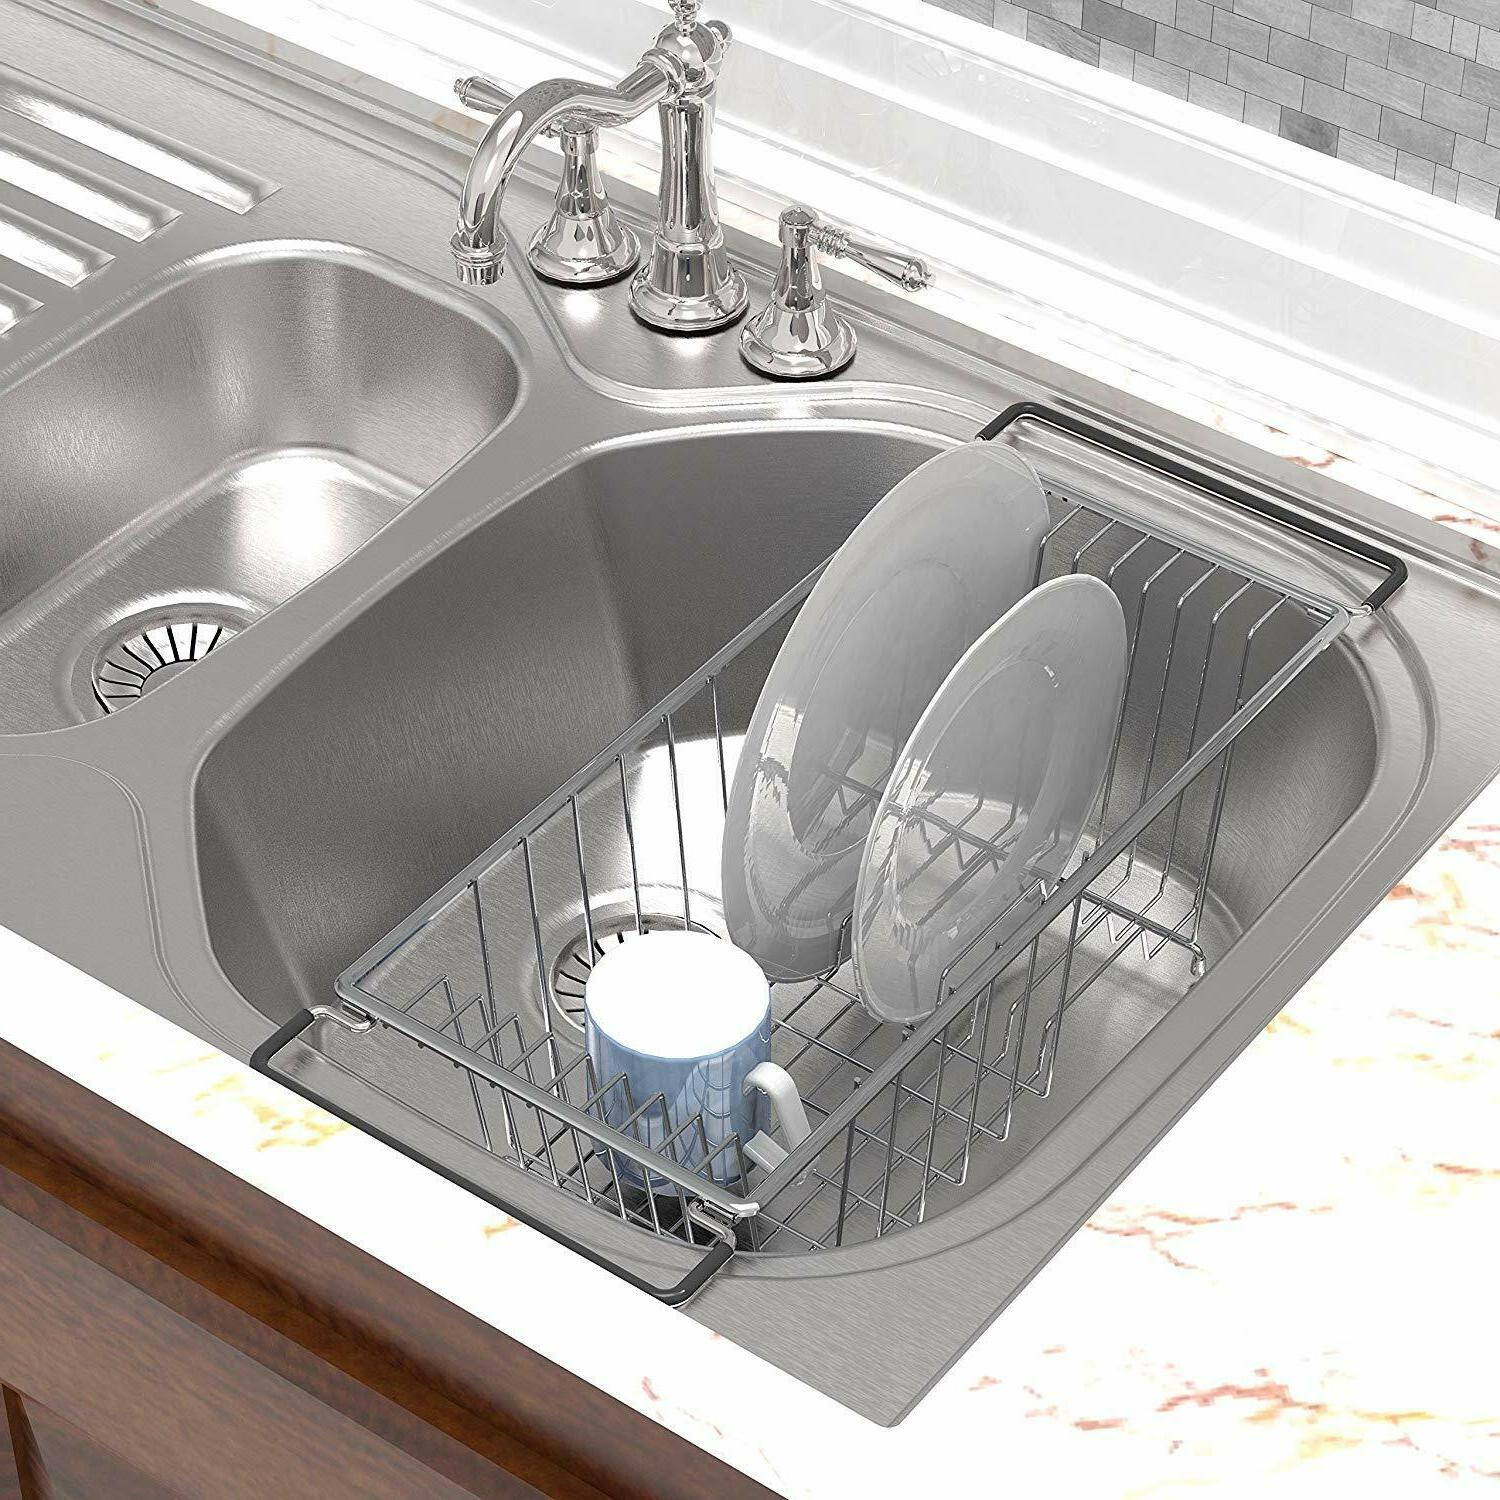 In Sink Dish Drying Rack Drainer Over The Sink For Small Spa